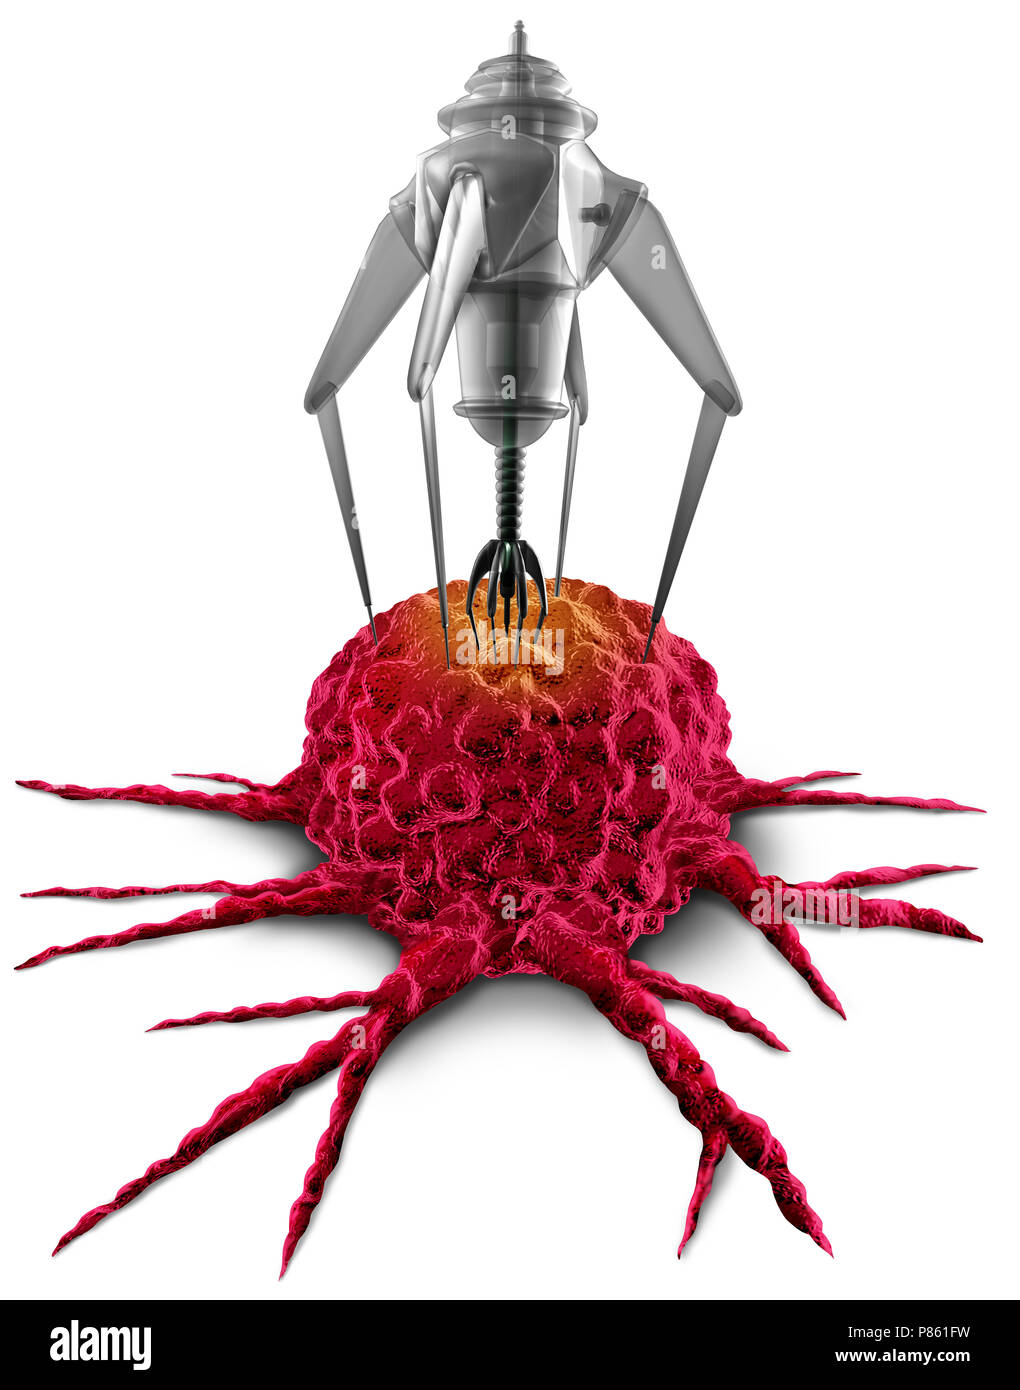 Nanorobot disease therapy as a medical bioengineeering nanomedicine illness fighting technology as a 3D render on a white background. - Stock Image